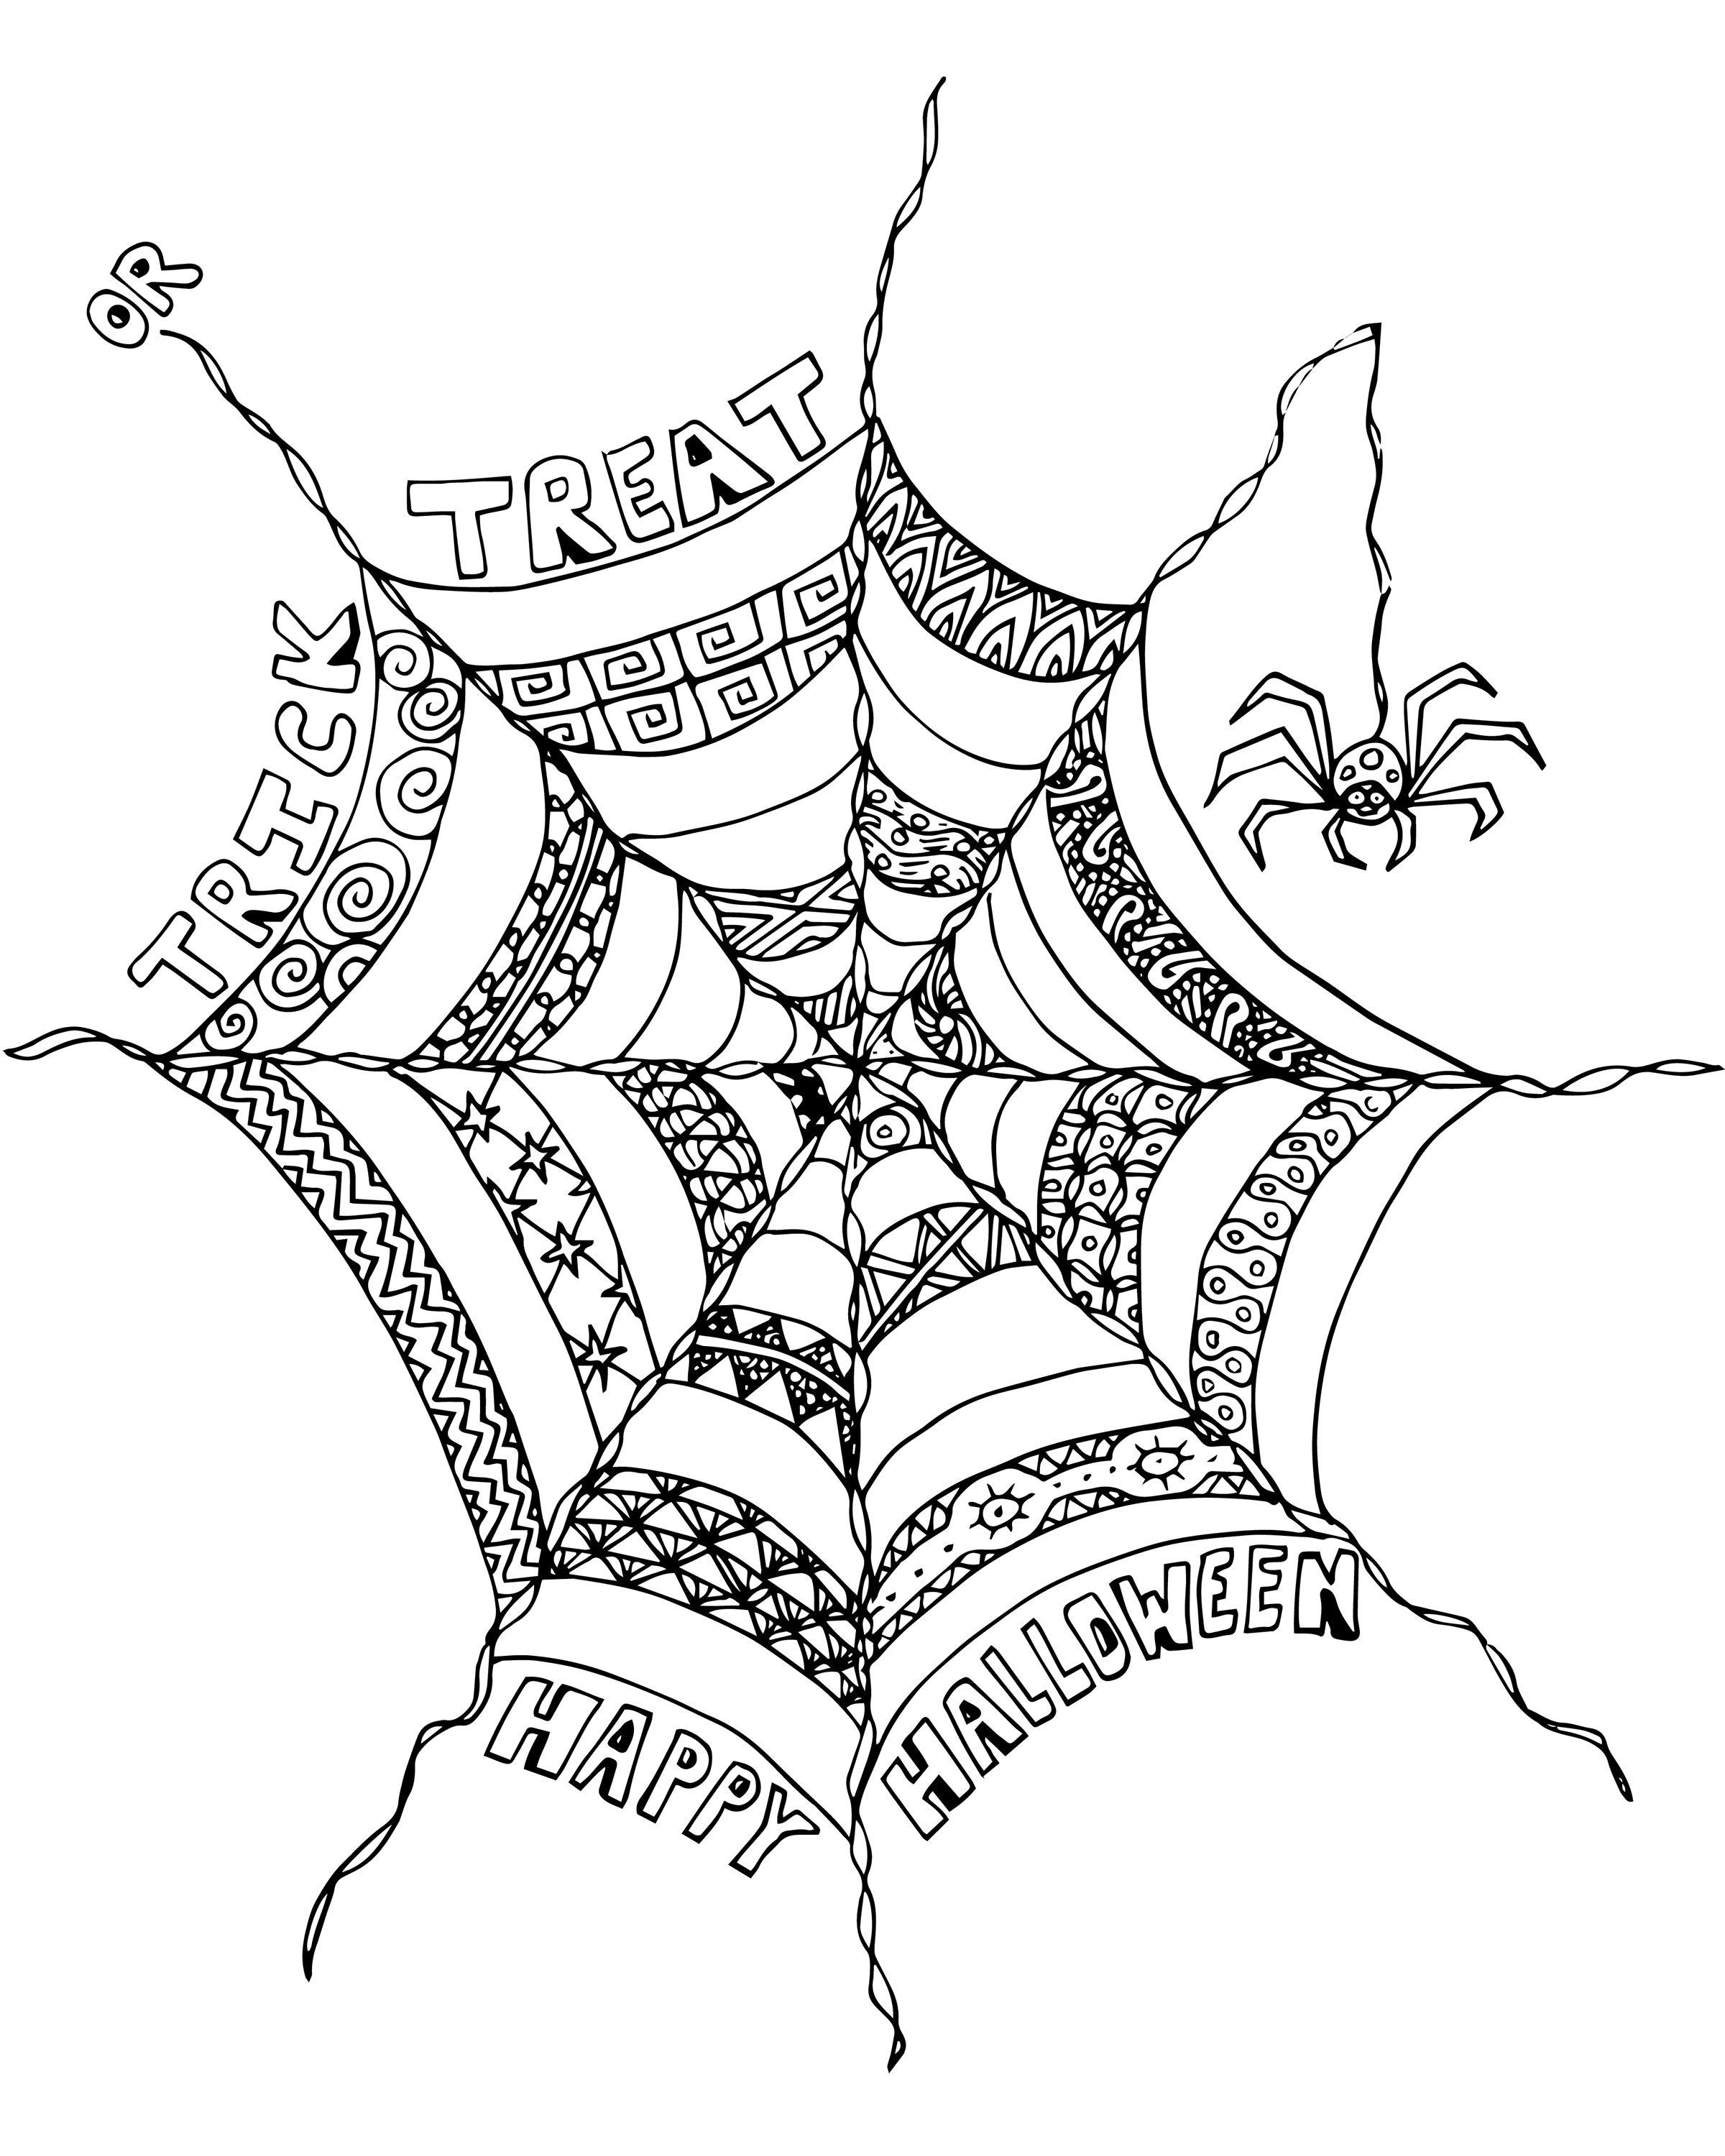 FREE Halloween Adult Coloring Page Spider Web